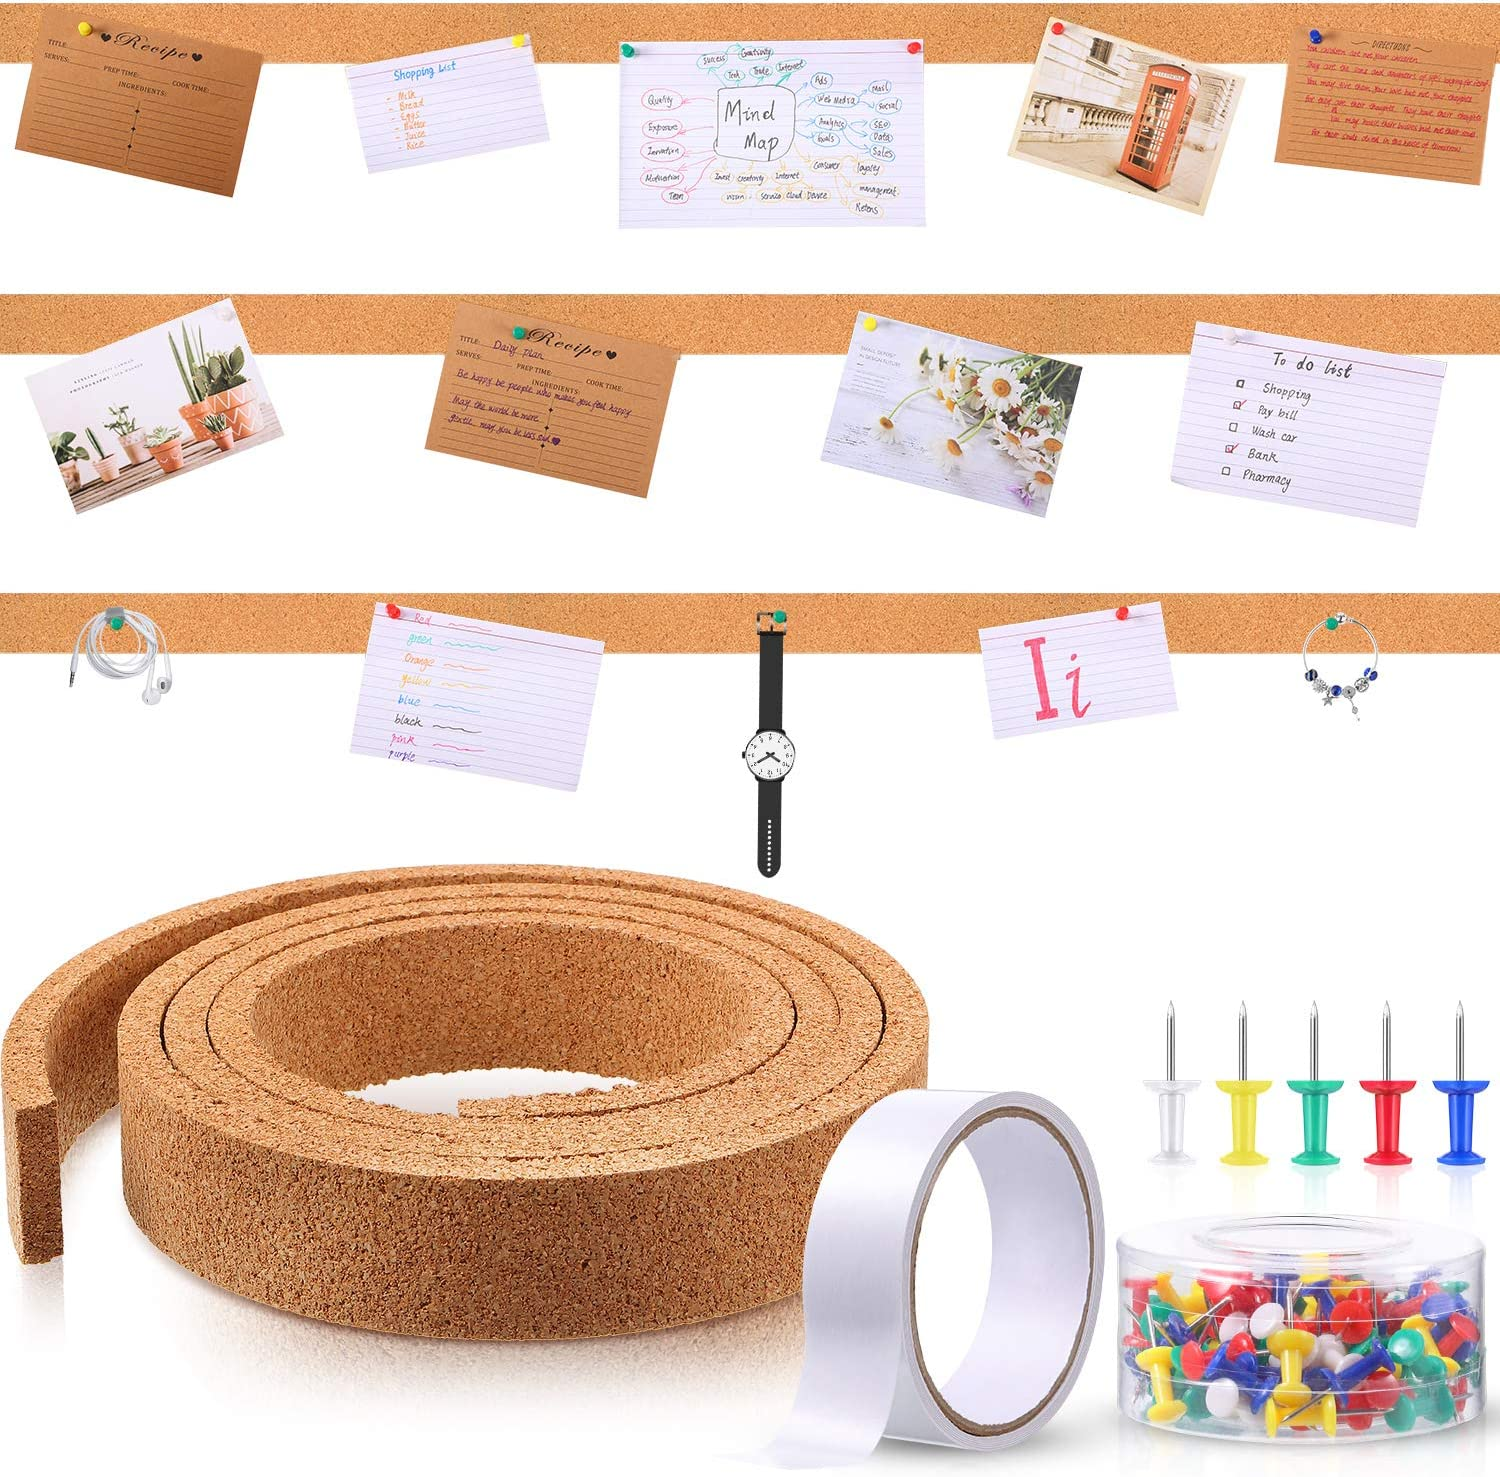 79 Inch Cork Strips Bulletin Bar Strips Frameless Cork Board Memo Strip with 1 Roll Double-Side Tape and 100 Multi-Color Map Thumb Tacks Pushpins in 1 Box for Office, School and Home